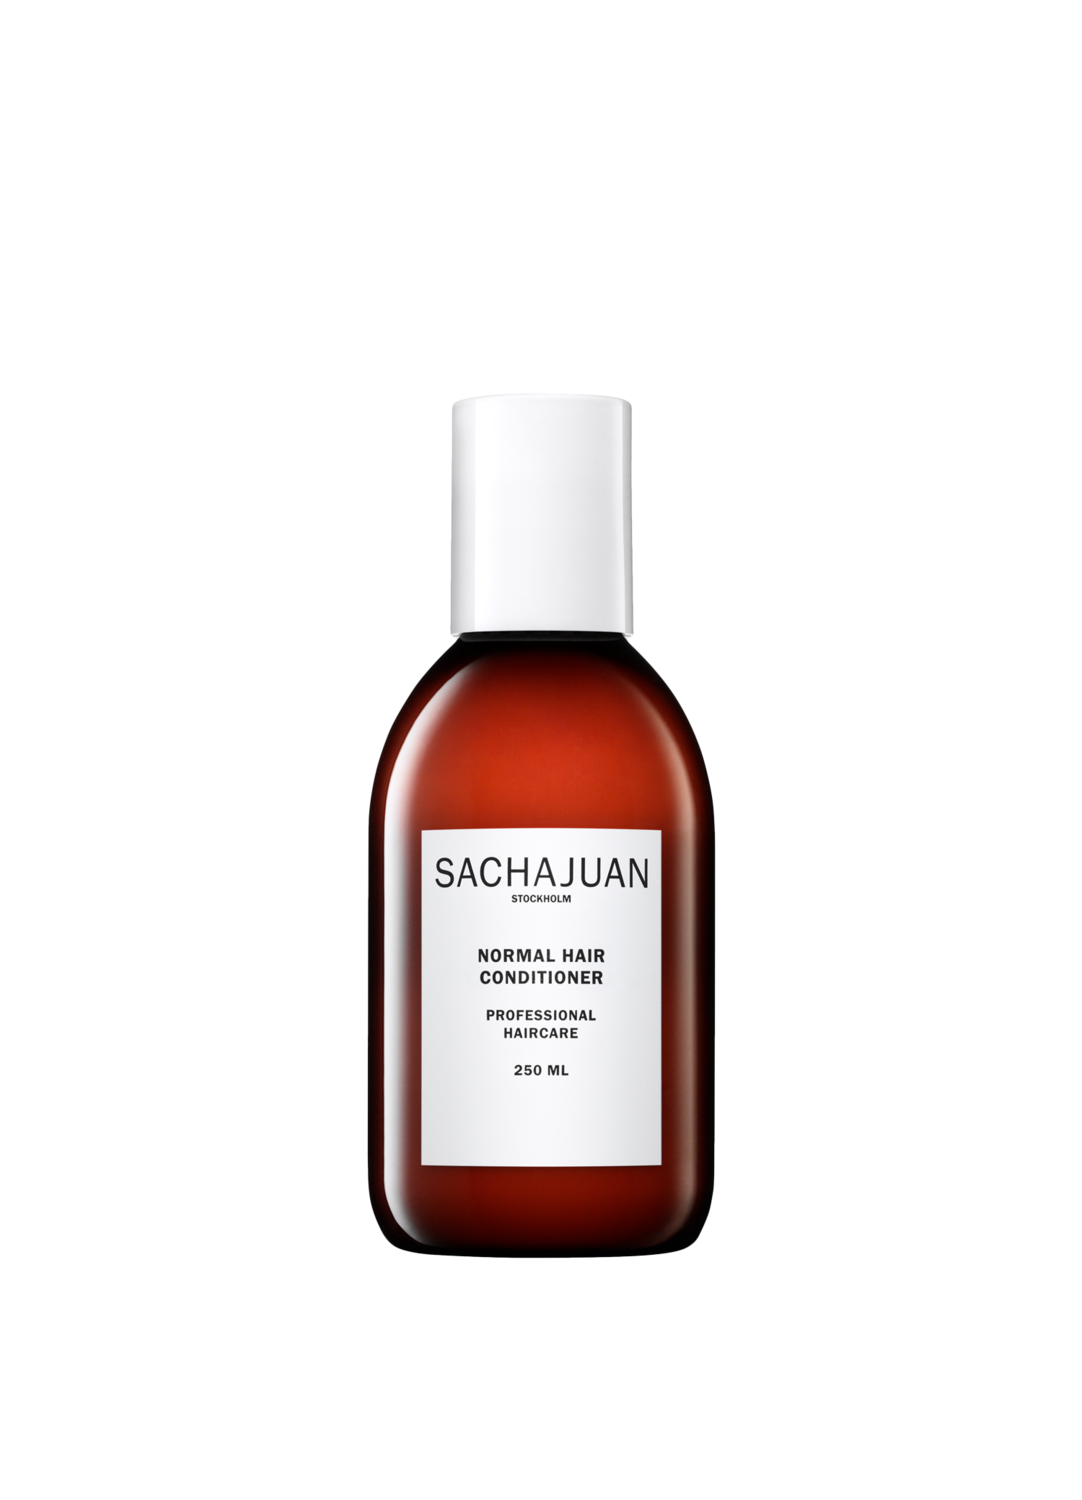 sachajuan | normal hair conditioner[product_type ]sachajuan - Kiss and Makeup